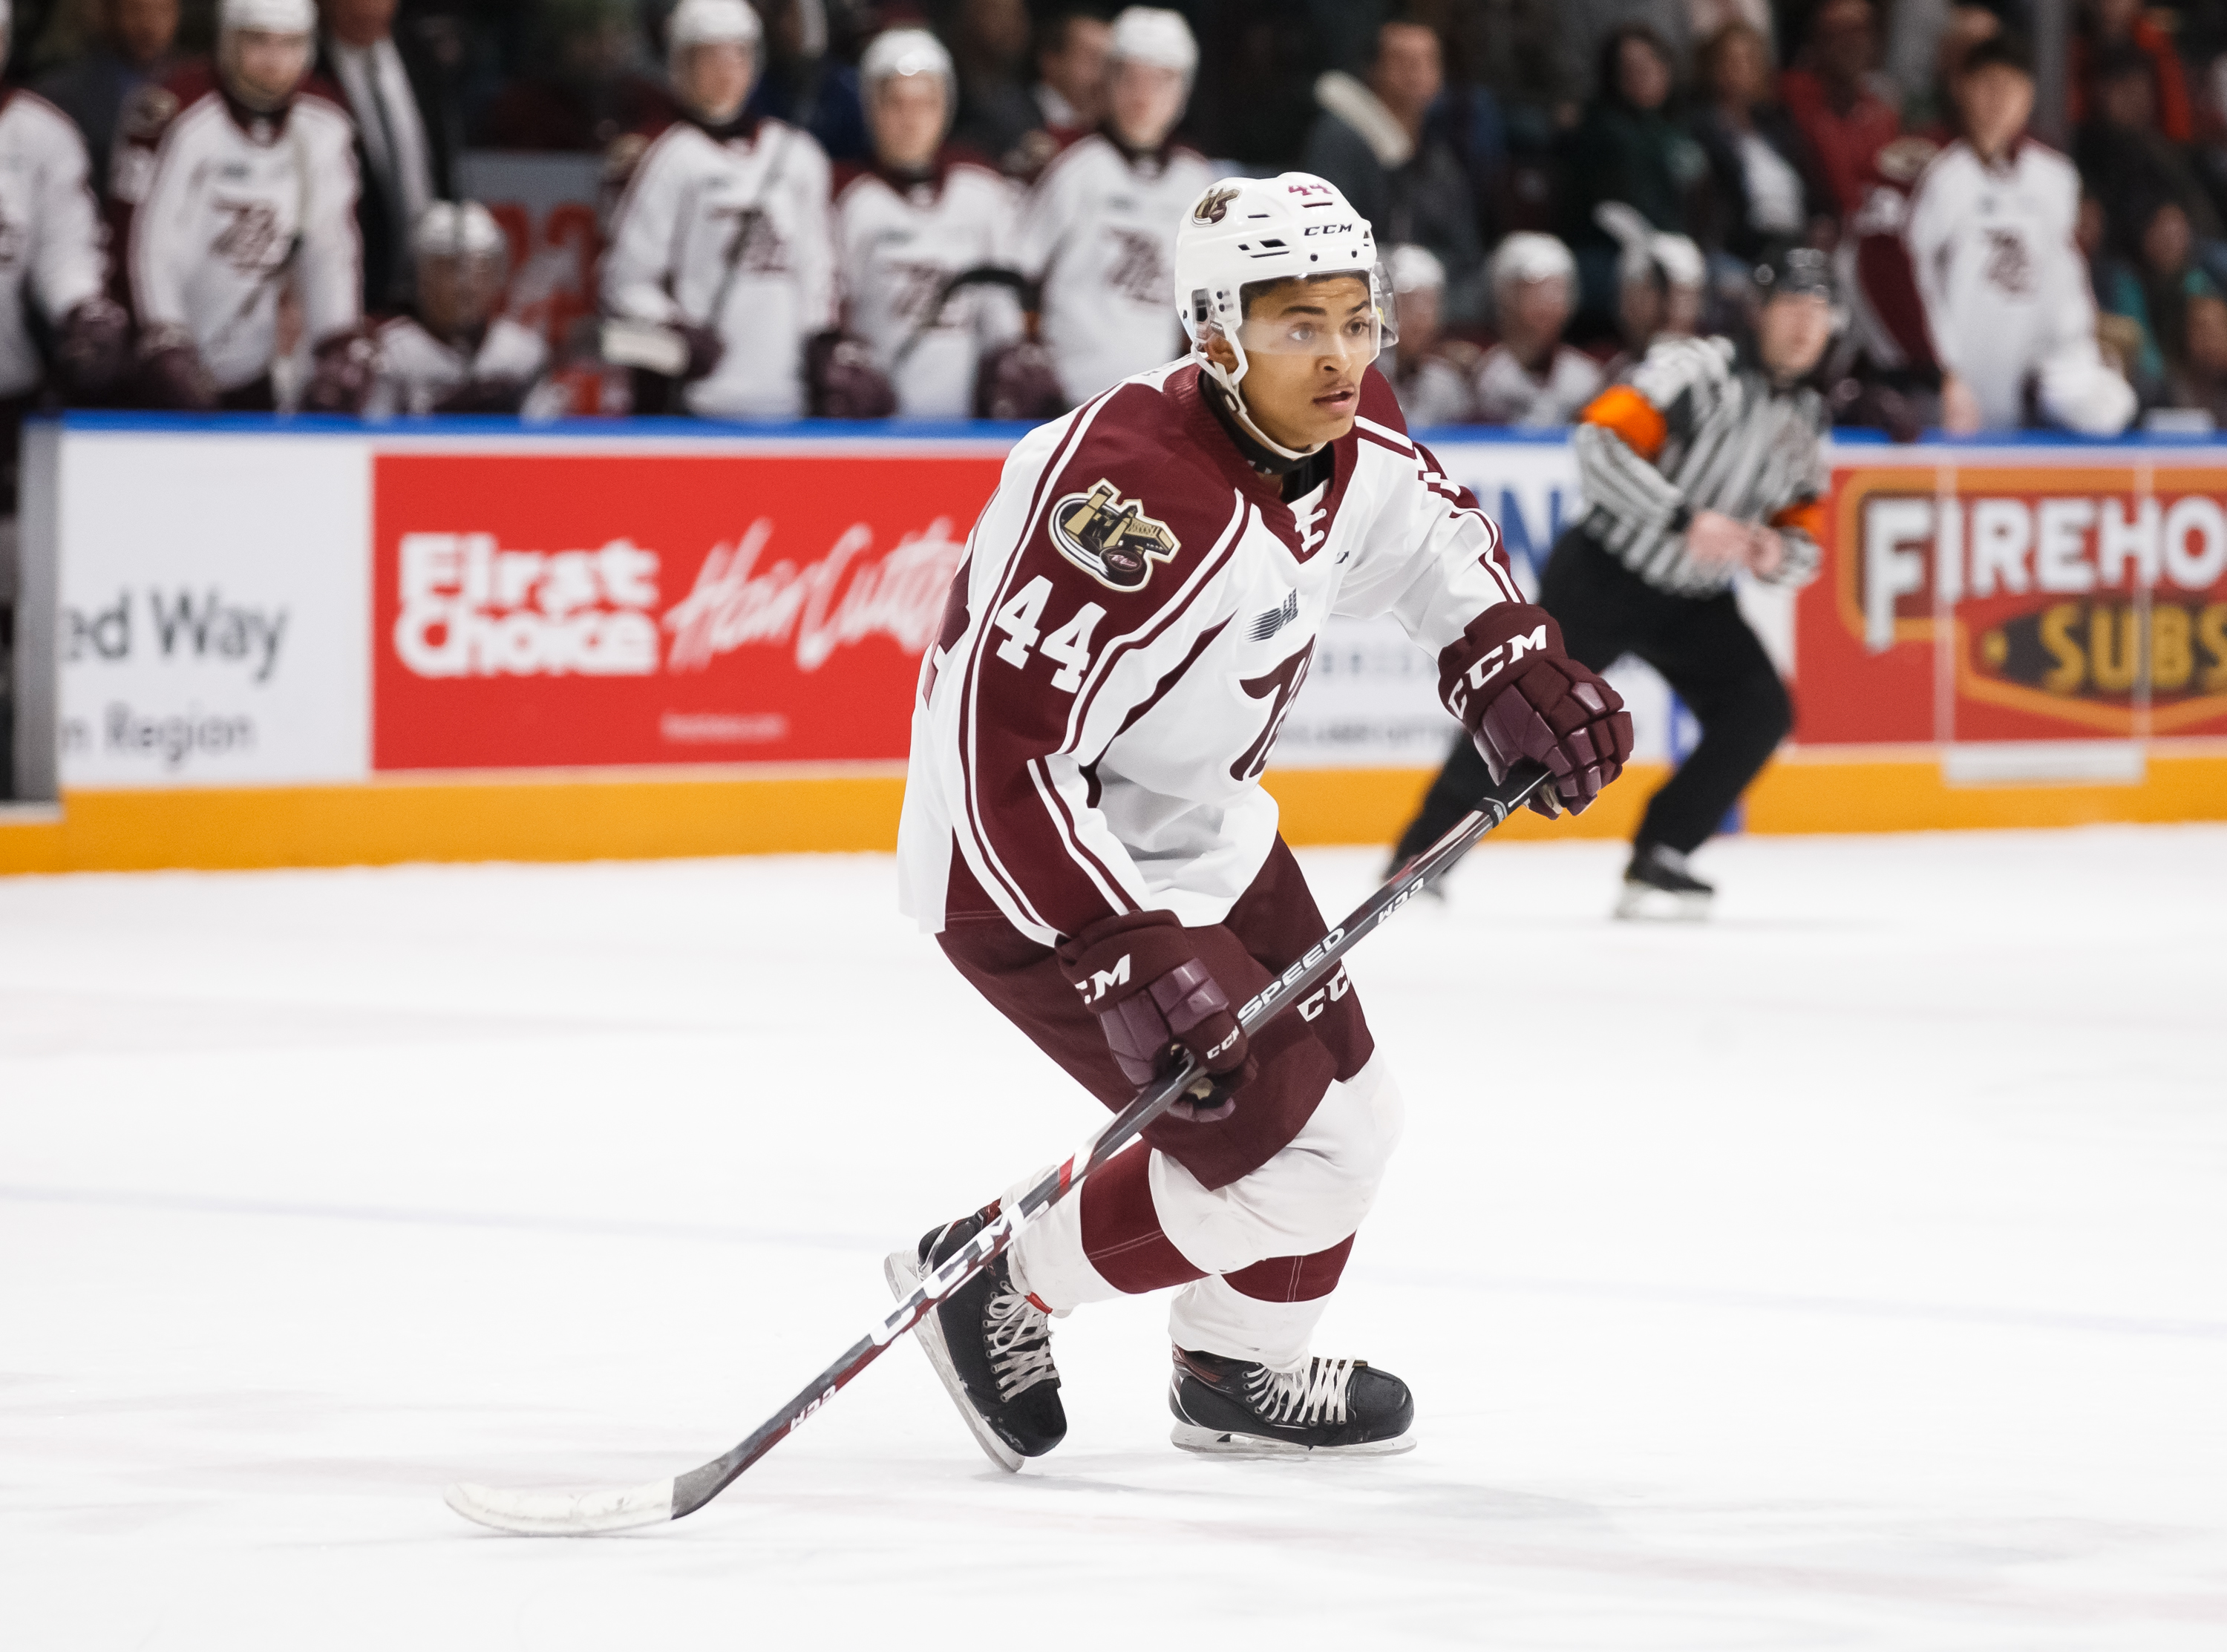 OSHAWA, ON - JANUARY 31: Akil Thomas #44 of the Peterborough Petes skates during an OHL game against the Oshawa General at the Tribute Communities Centre on January 31, 2020 in Oshawa, Ontario, Canada.